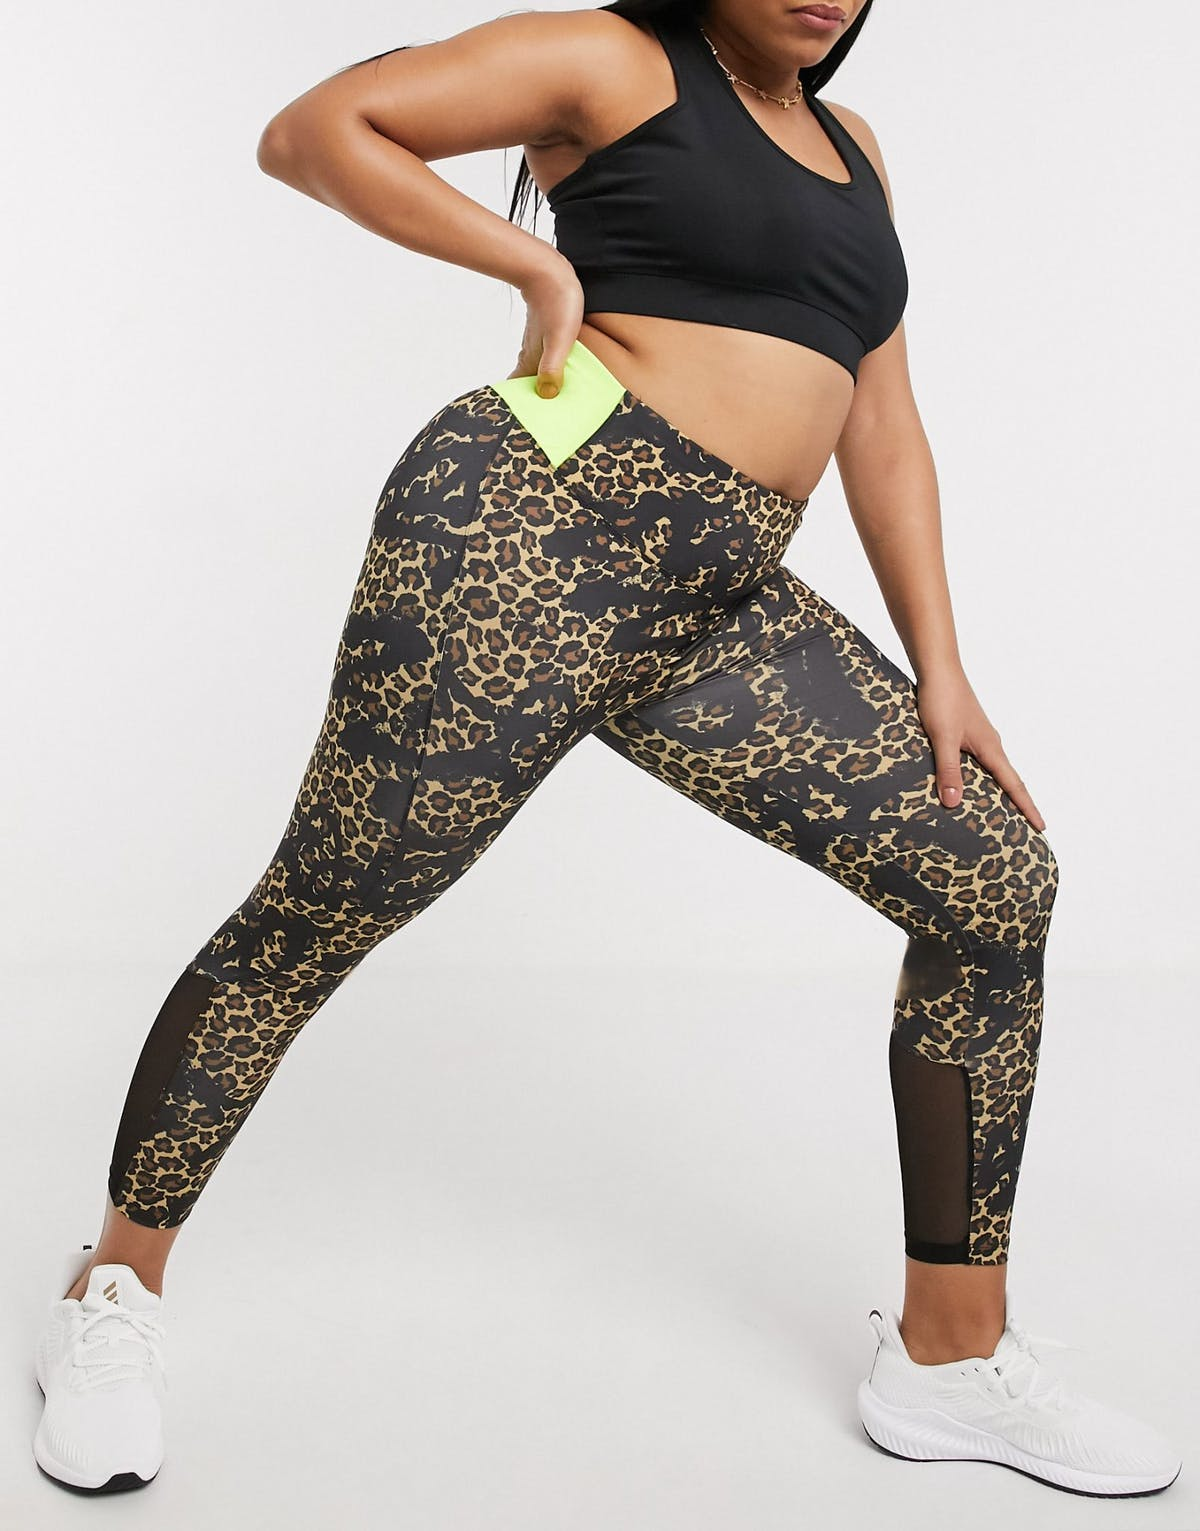 The Best Plus Size Activewear For Exercise